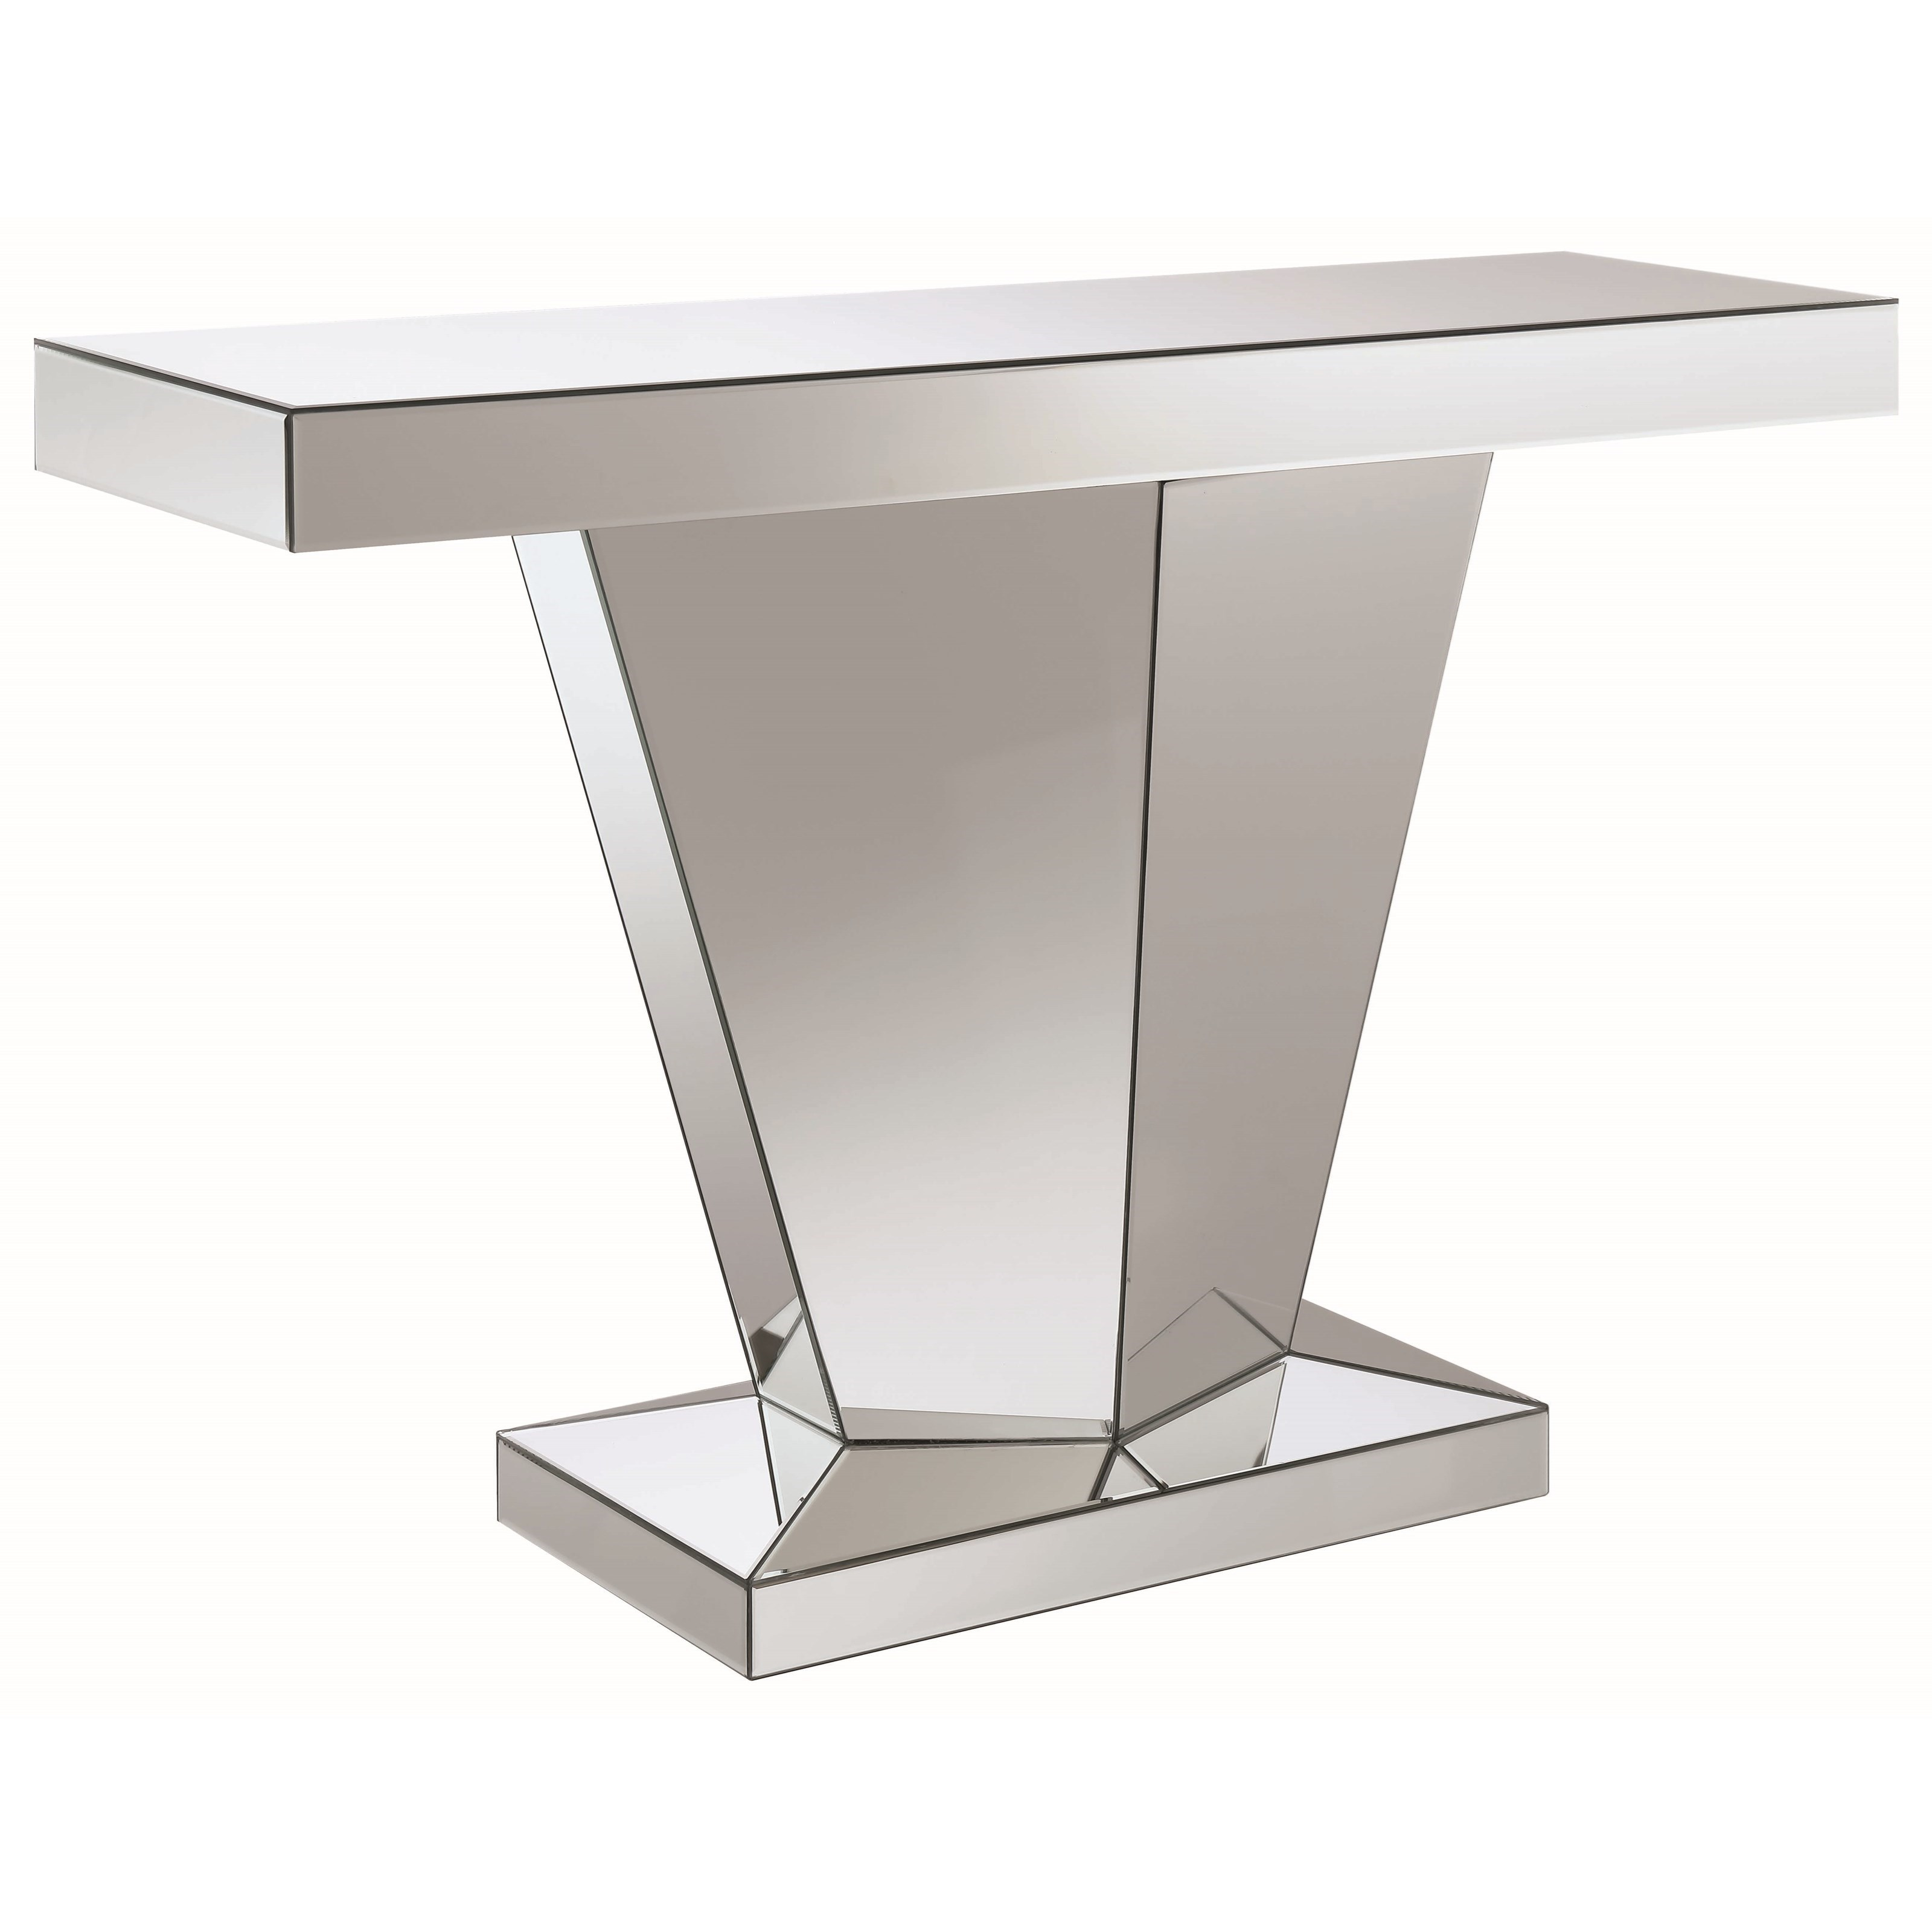 Coaster Accent Tables Console Table - Item Number: 930008